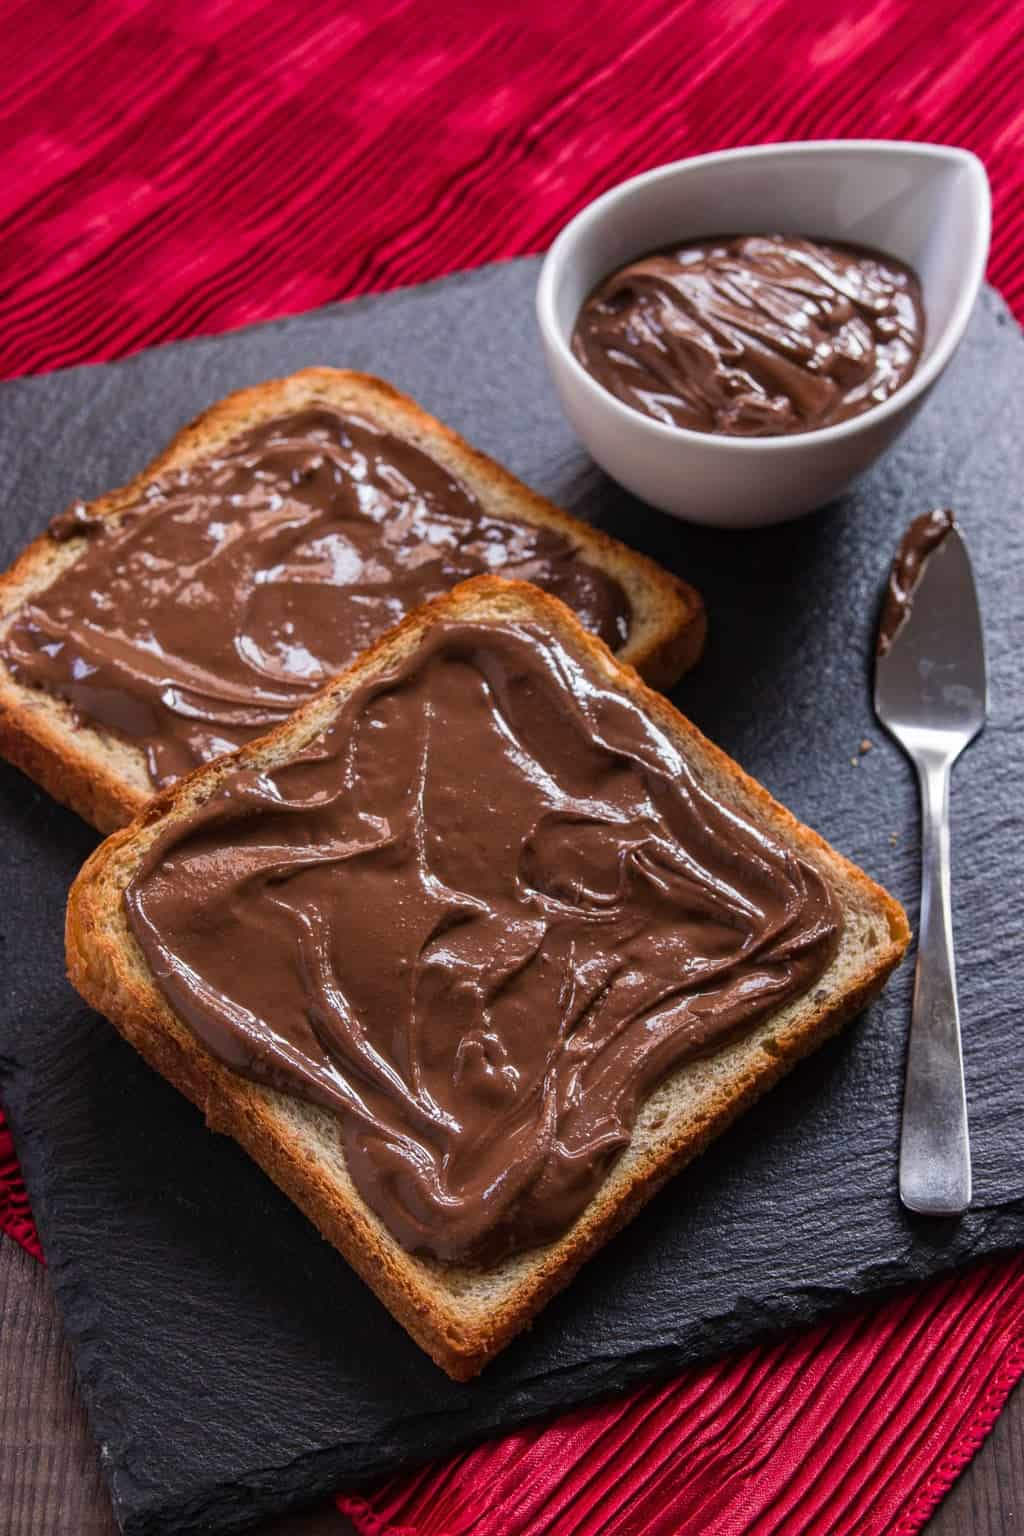 This chocolate sesame butter is smooth and creamy loaded with the rich nutty of sesame seeds for a decadent spread that goes with bread, pancakes, and french toast. Best of all, it only requires 4 ingredients and 5 minutes of your time to make.